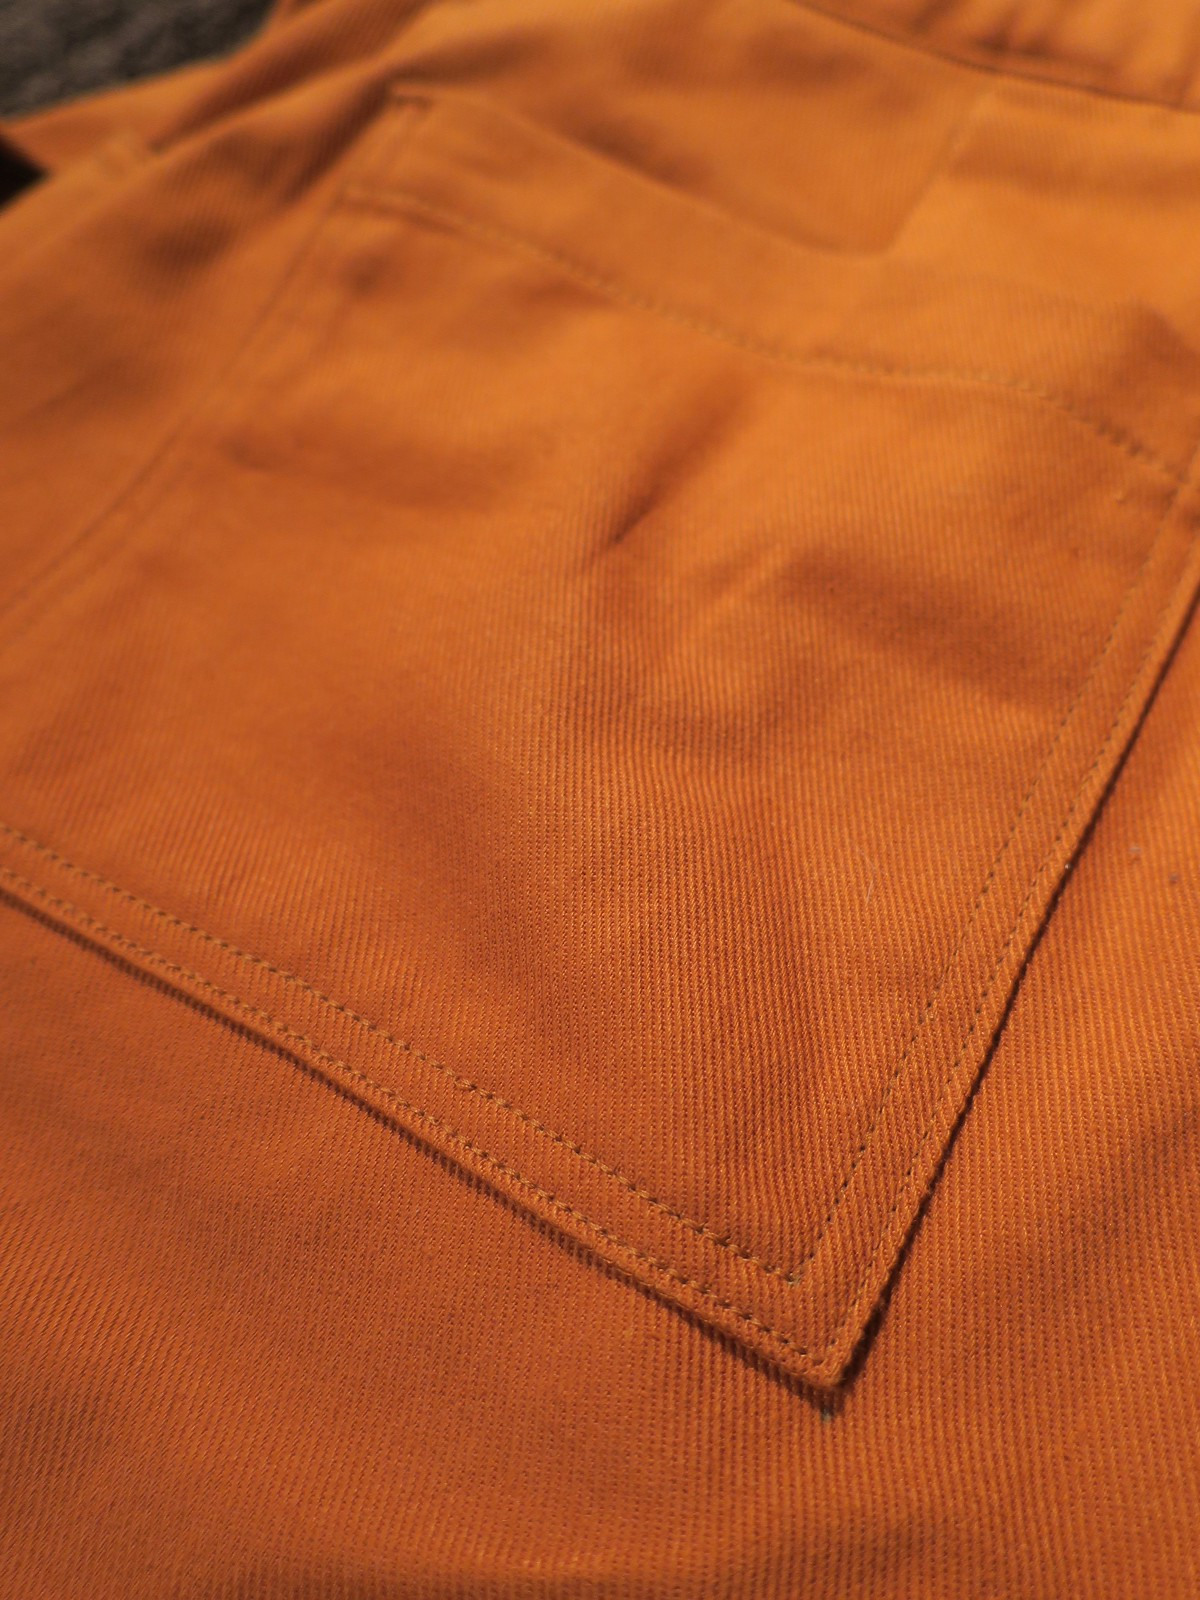 Lander pants top stitching